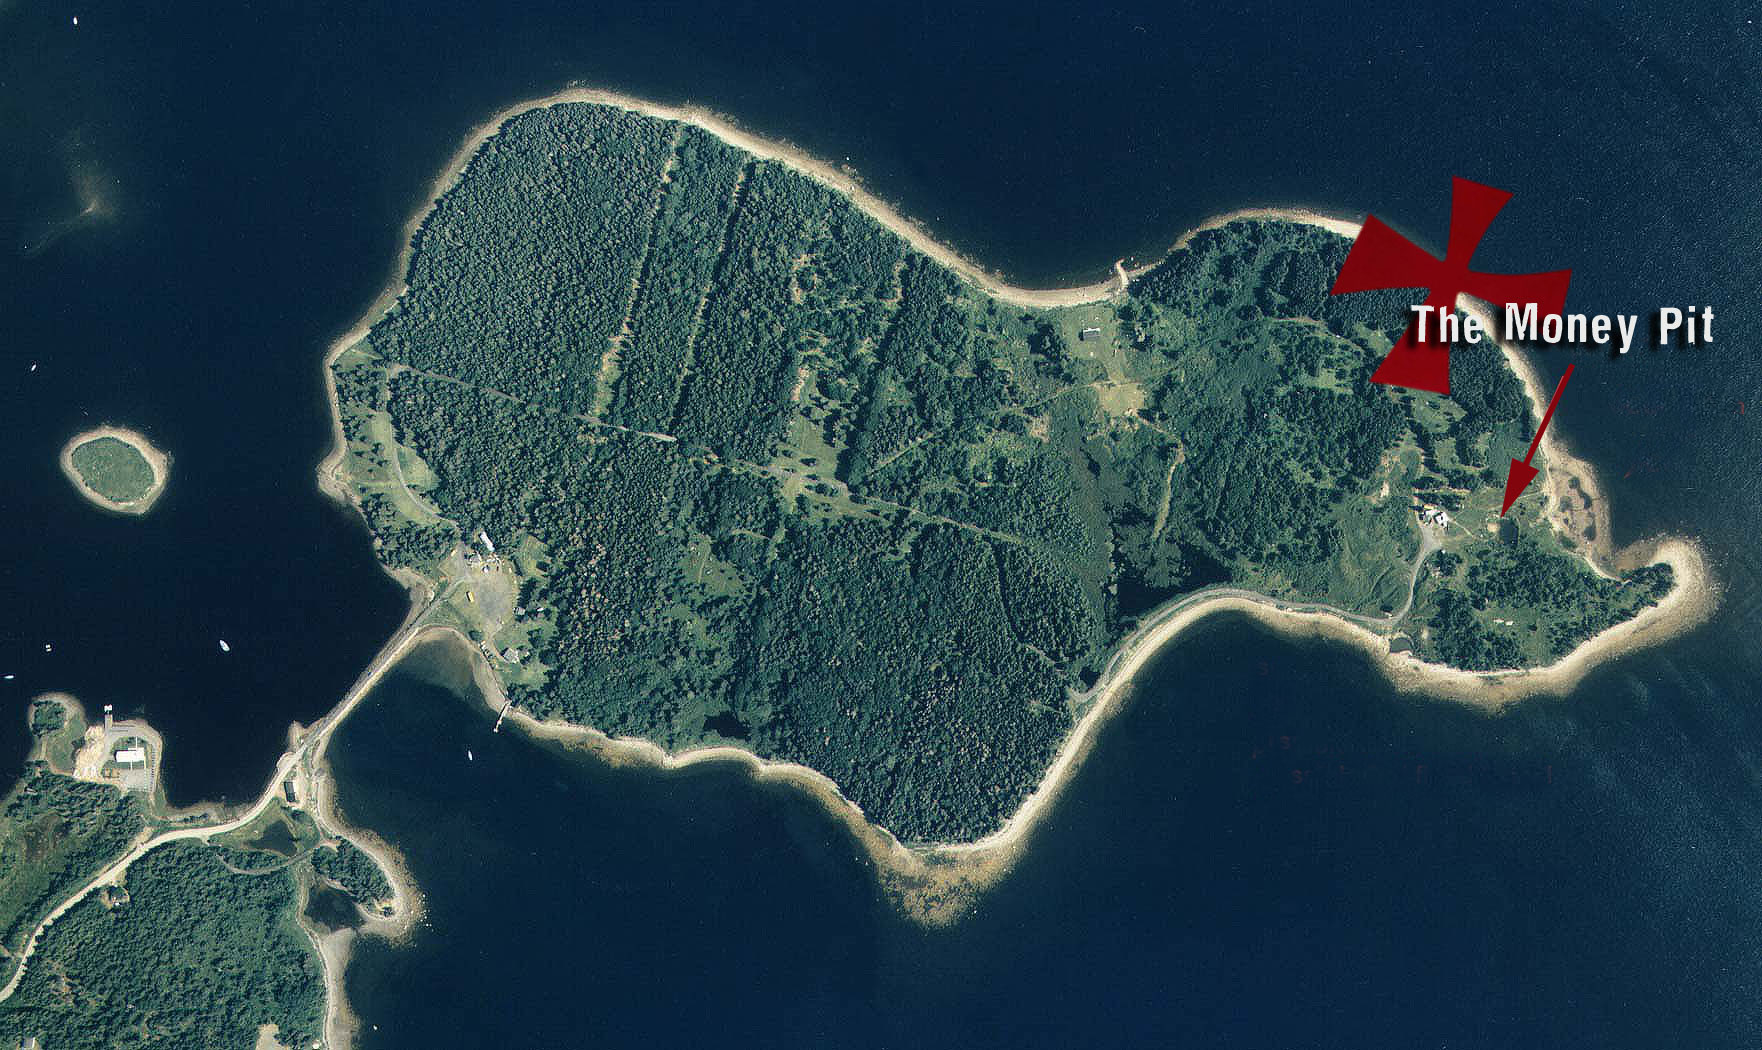 What do we know about Oak Island?